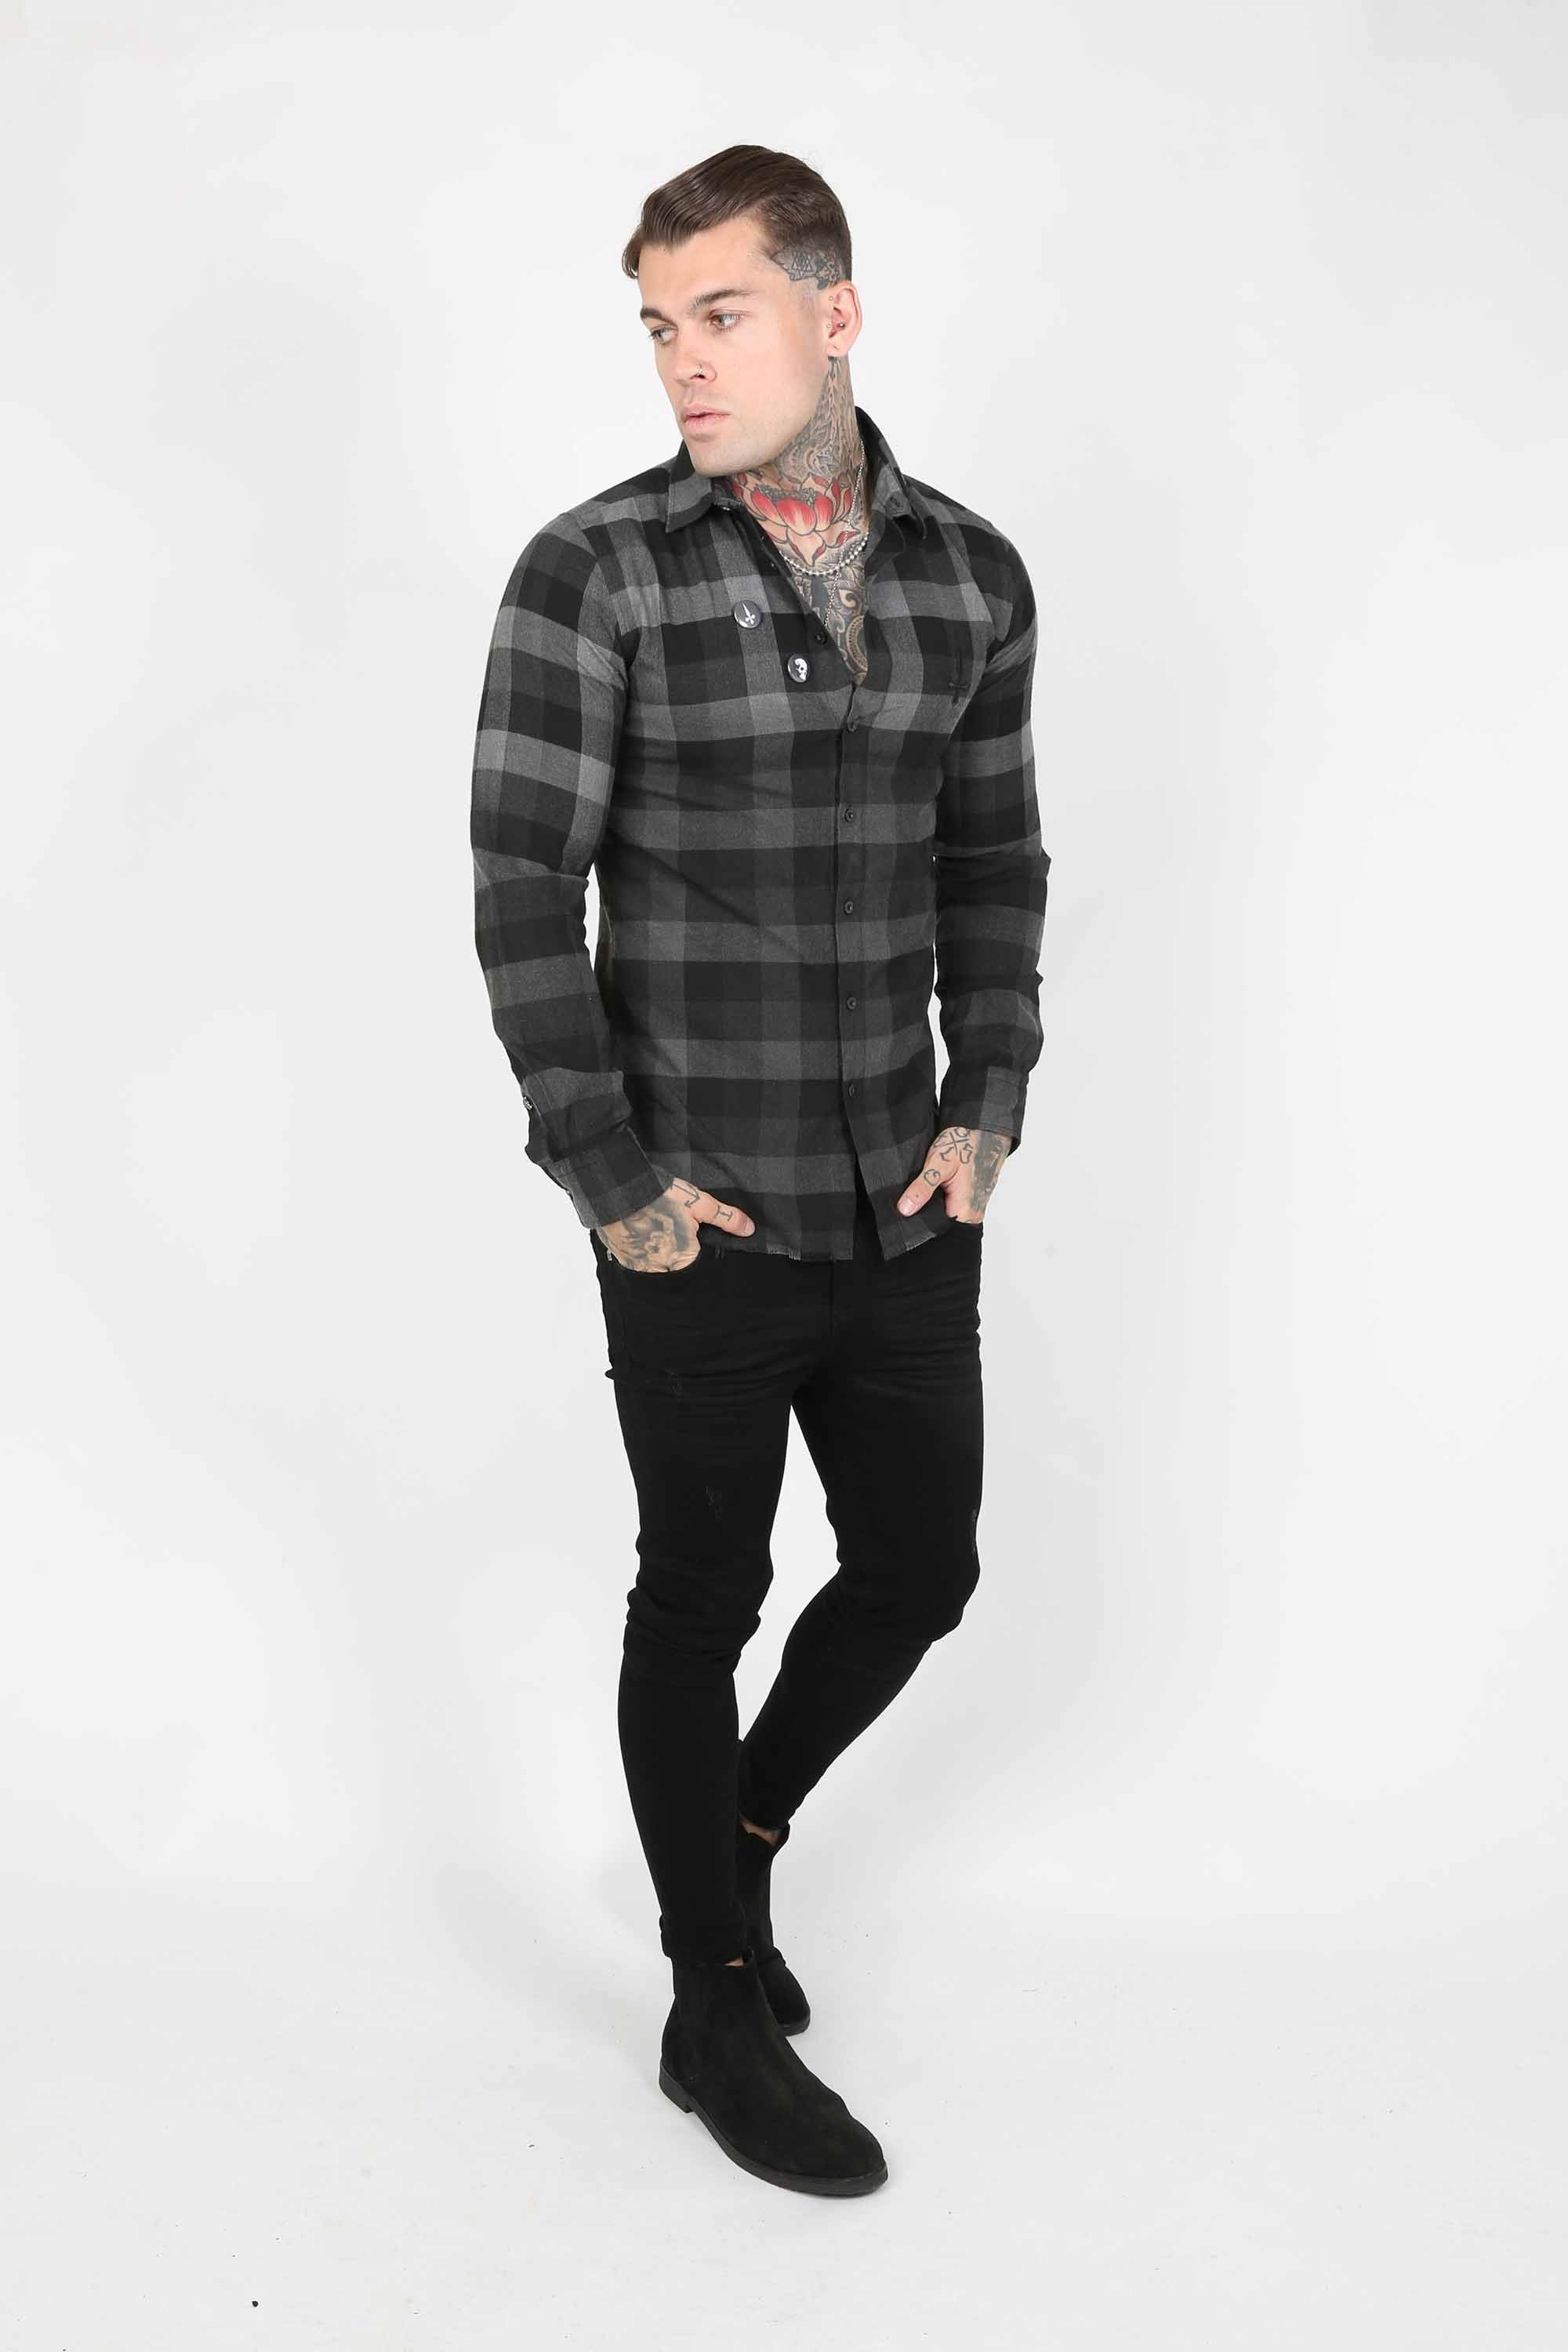 Squared Plaid Men's Shirt - Grey - Judas Sinned Clothing